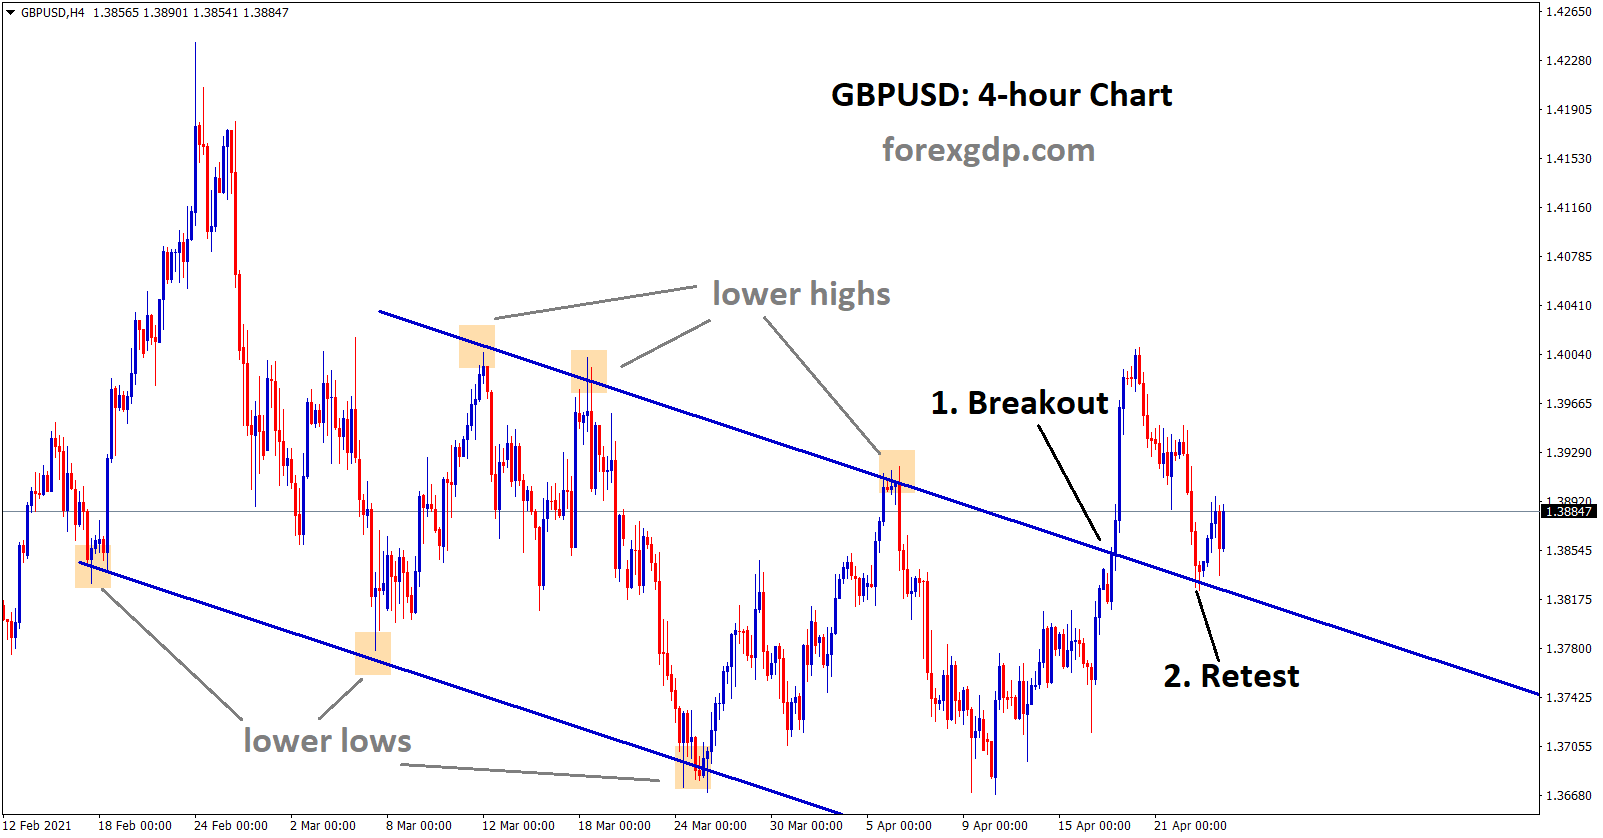 GBPUSD breakout and retest in downtrend 4hr chart